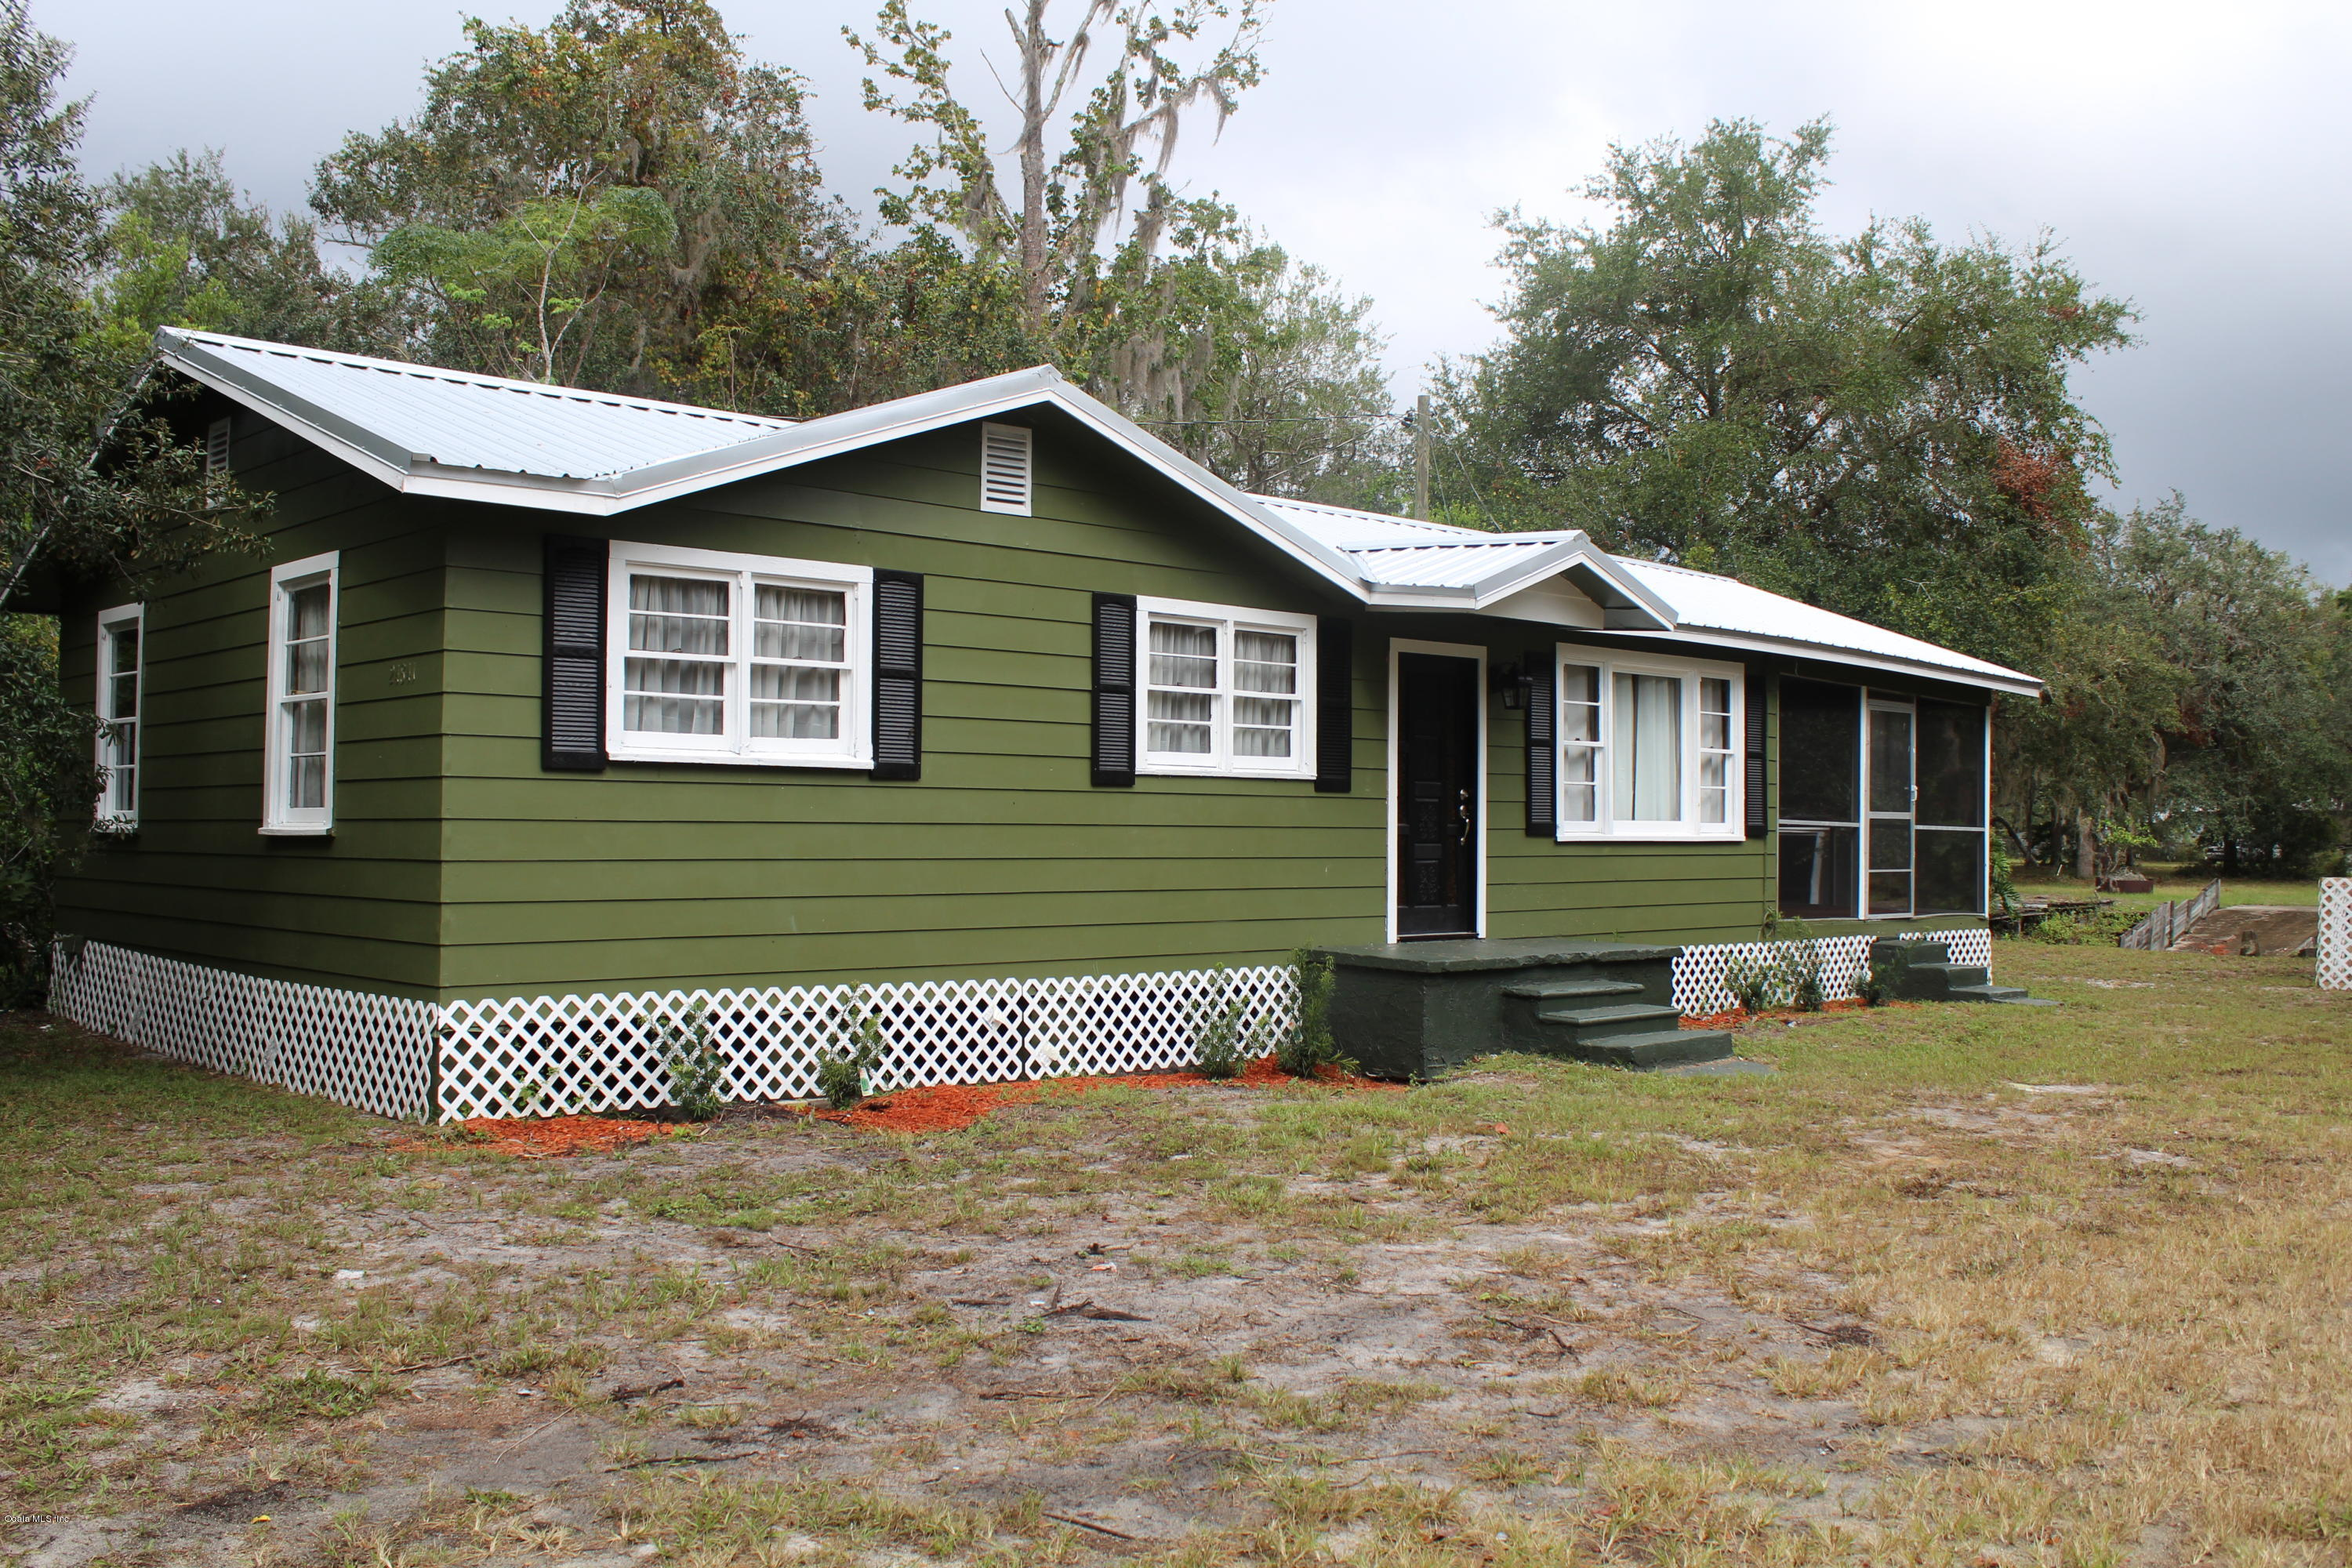 24841 NE 135TH STREET, SALT SPRINGS, FL 32134